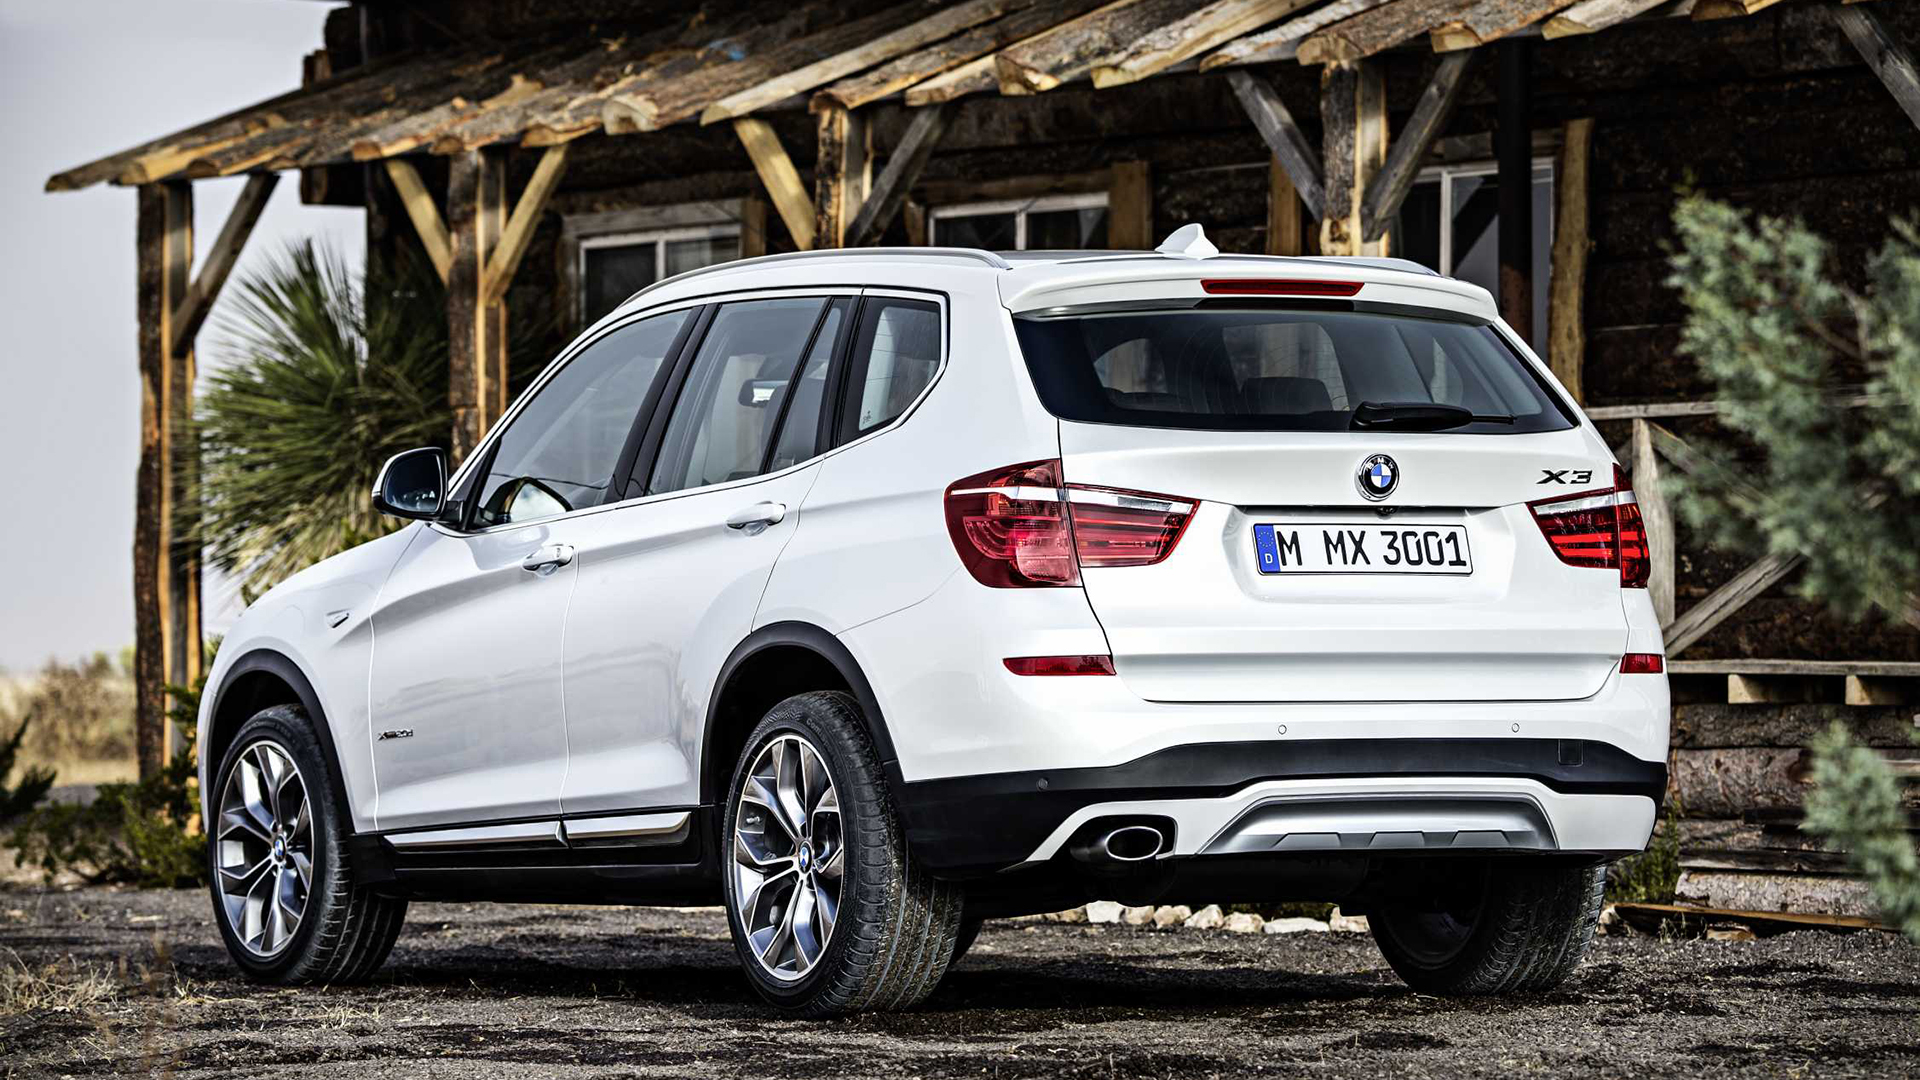 BMW x3 2014 xDrive 20d Expedition Compare